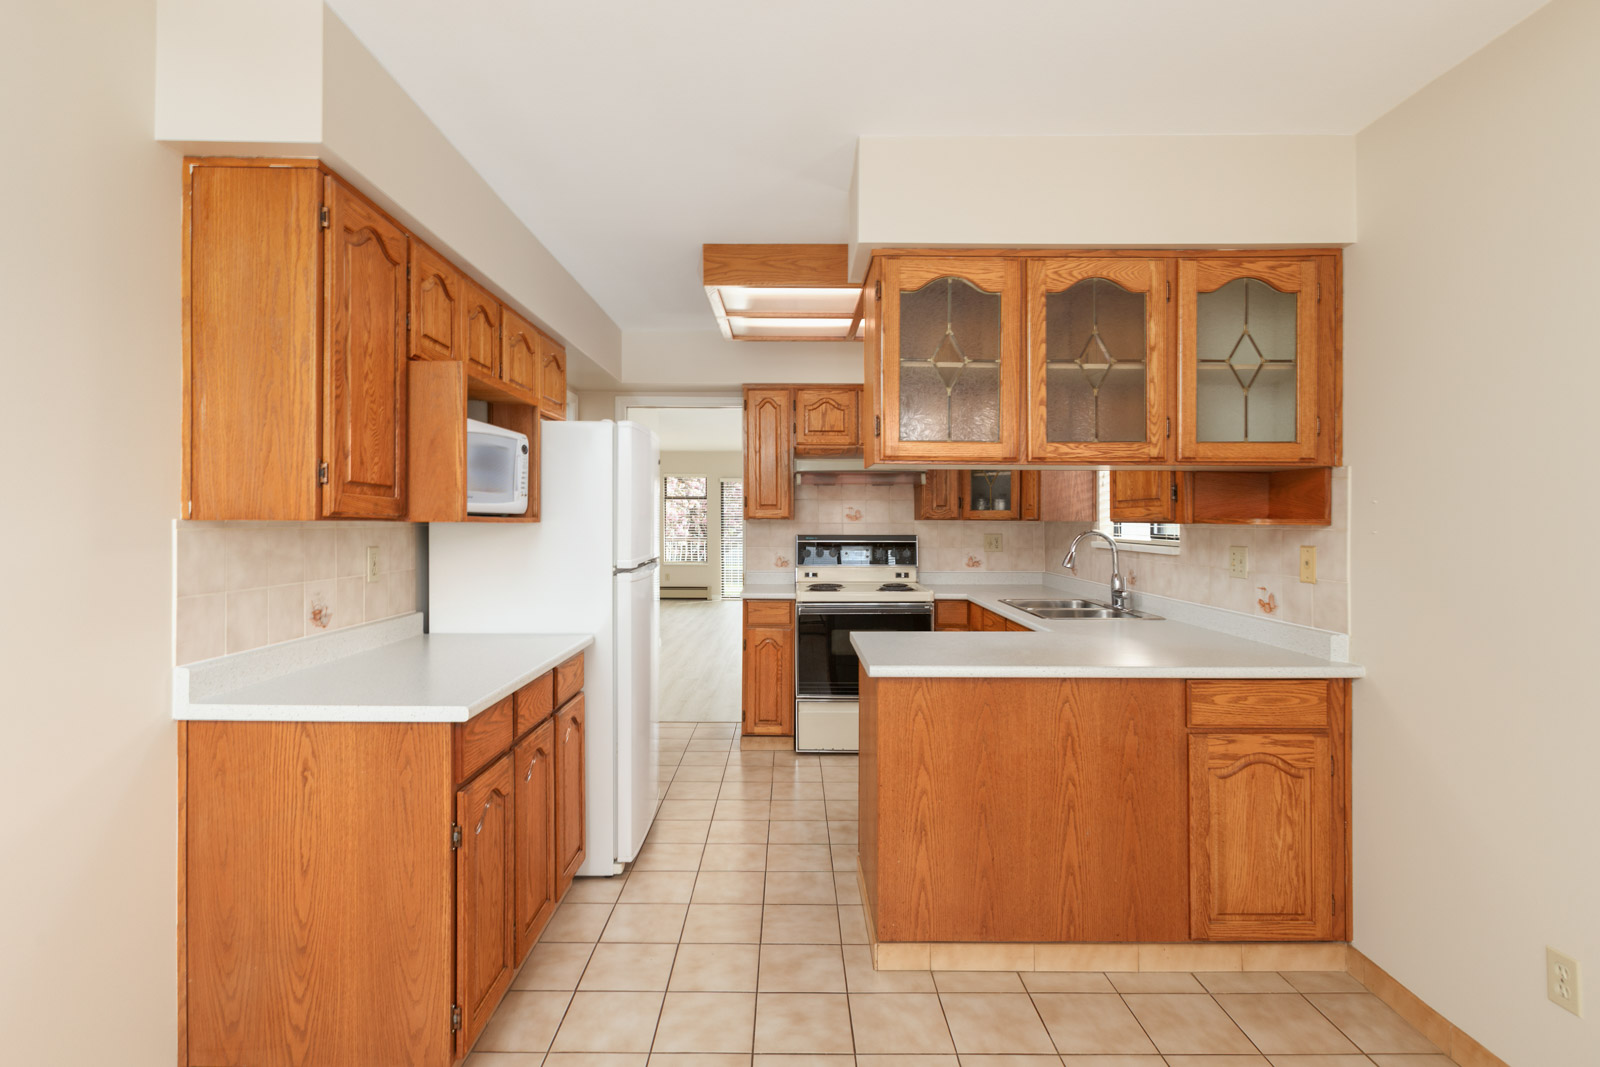 Open kitchen with full range of appliances, with a refrigerator, stove, oven, sink, and cabinetry providing storage space with tiled flooring in a rental home in East Vancouver provided by Birds Nest Properties